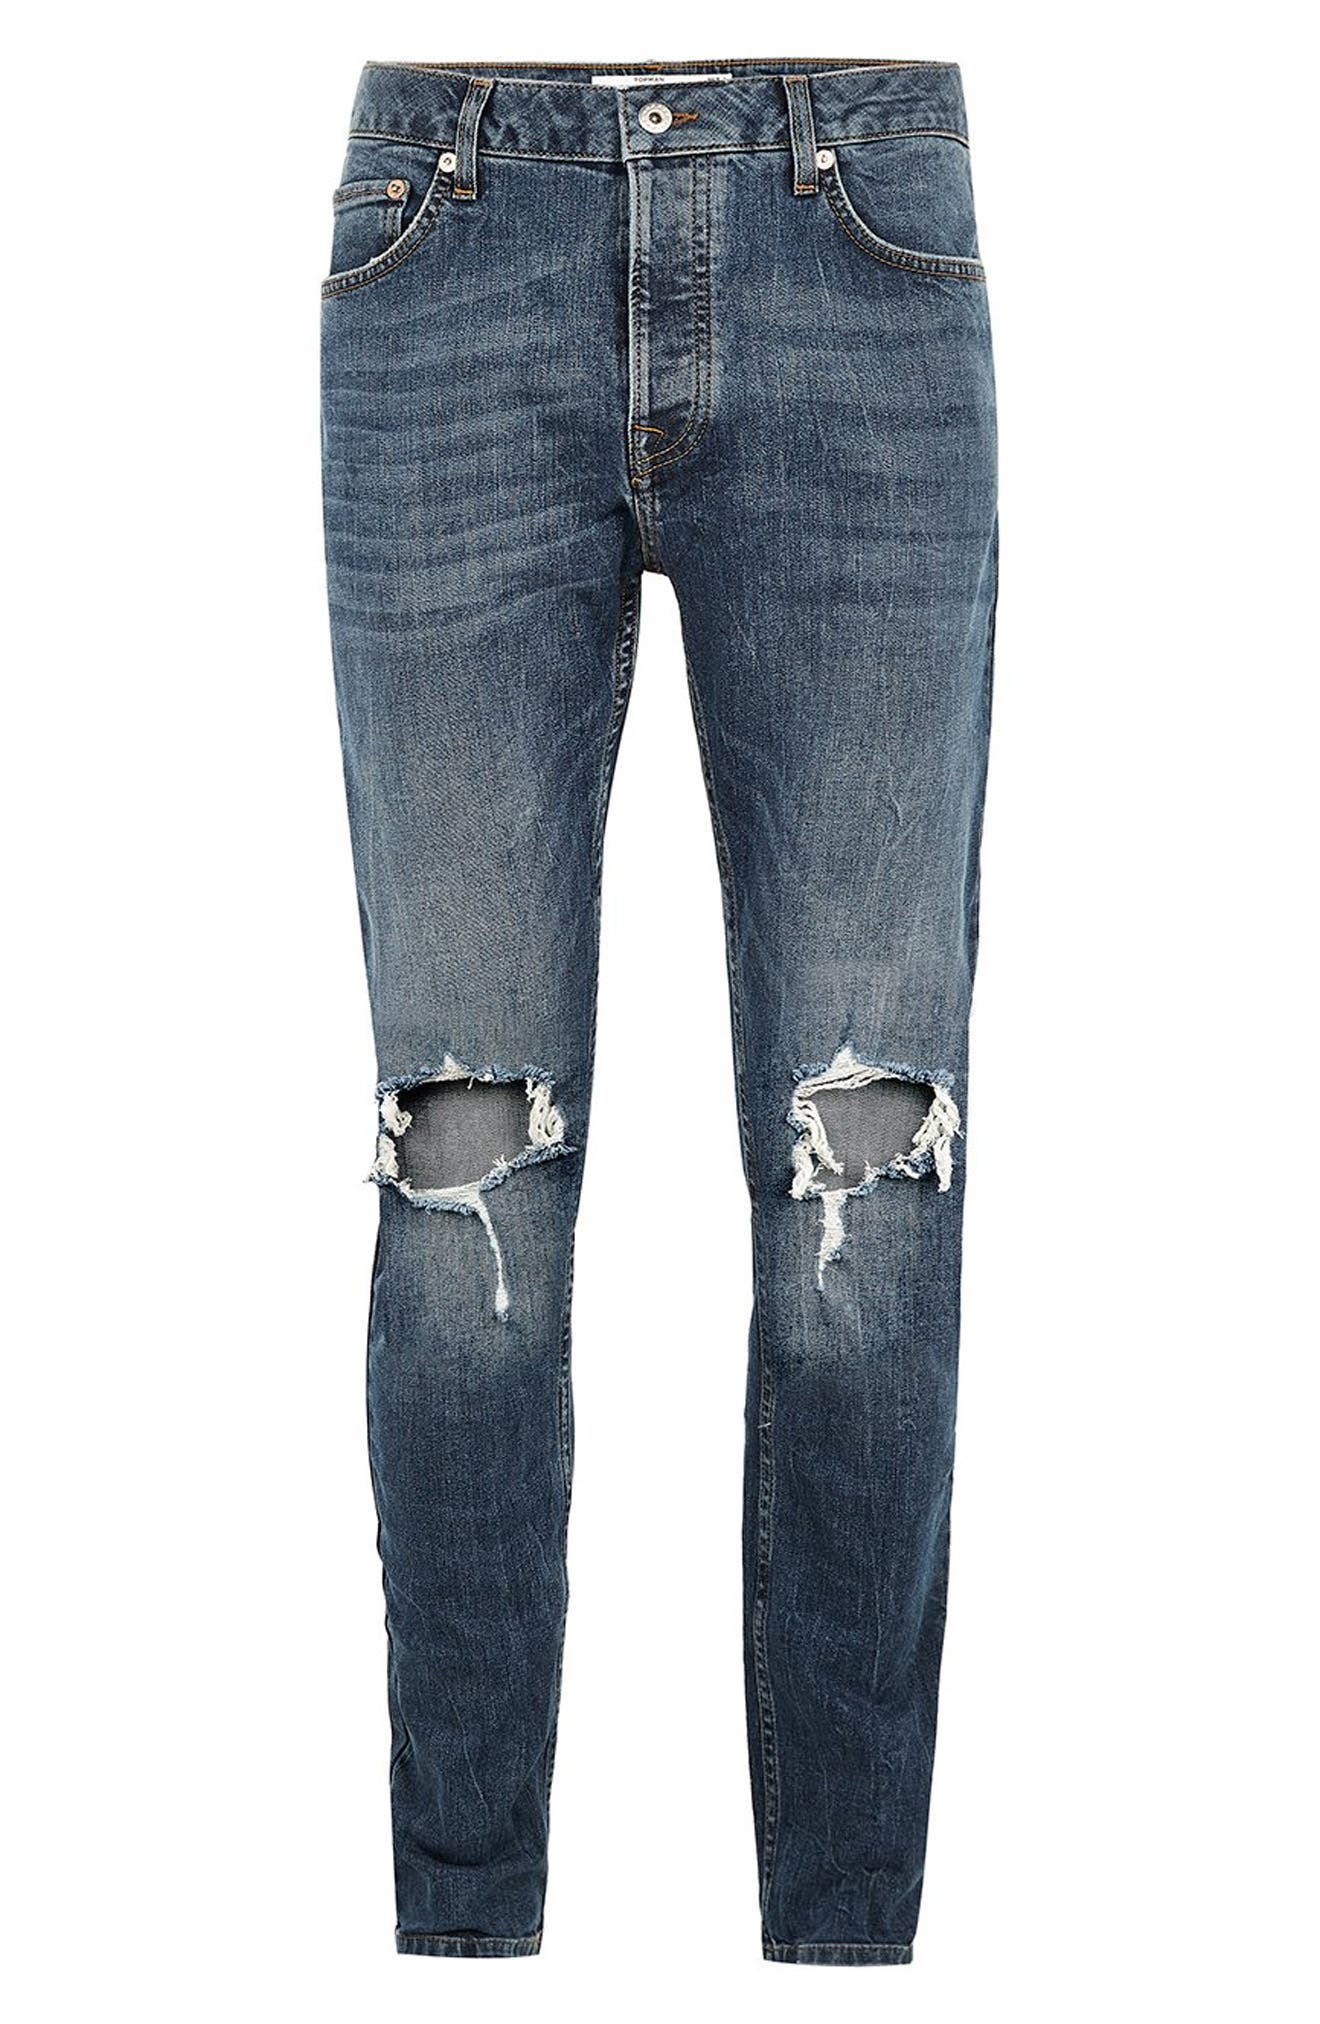 TOPMAN, Polly Ripped Stretch Skinny Jeans, Alternate thumbnail 5, color, BLUE